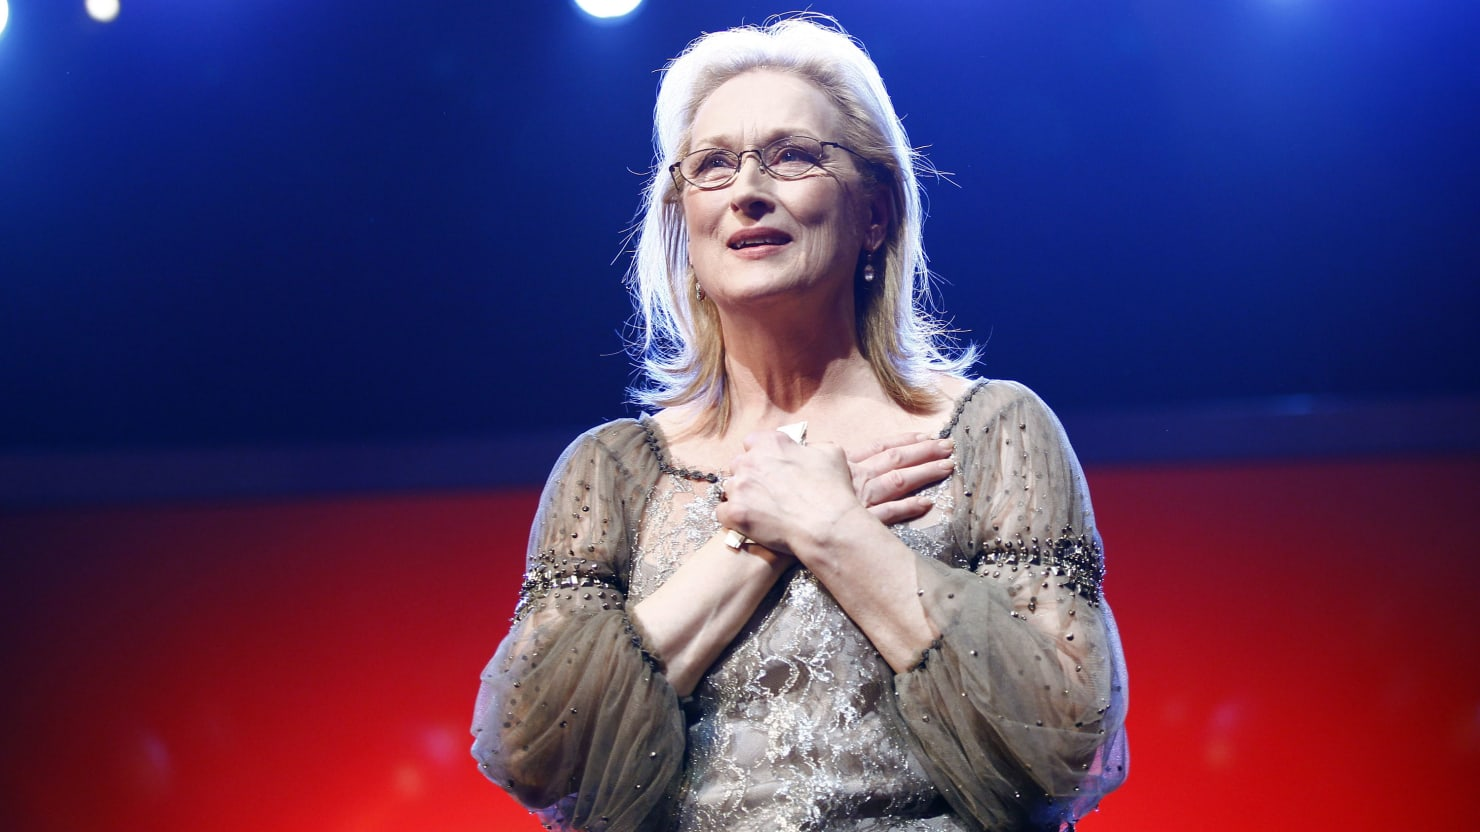 The #MeToo Movement Targets Meryl Streep and Shoots Itself in the Foot